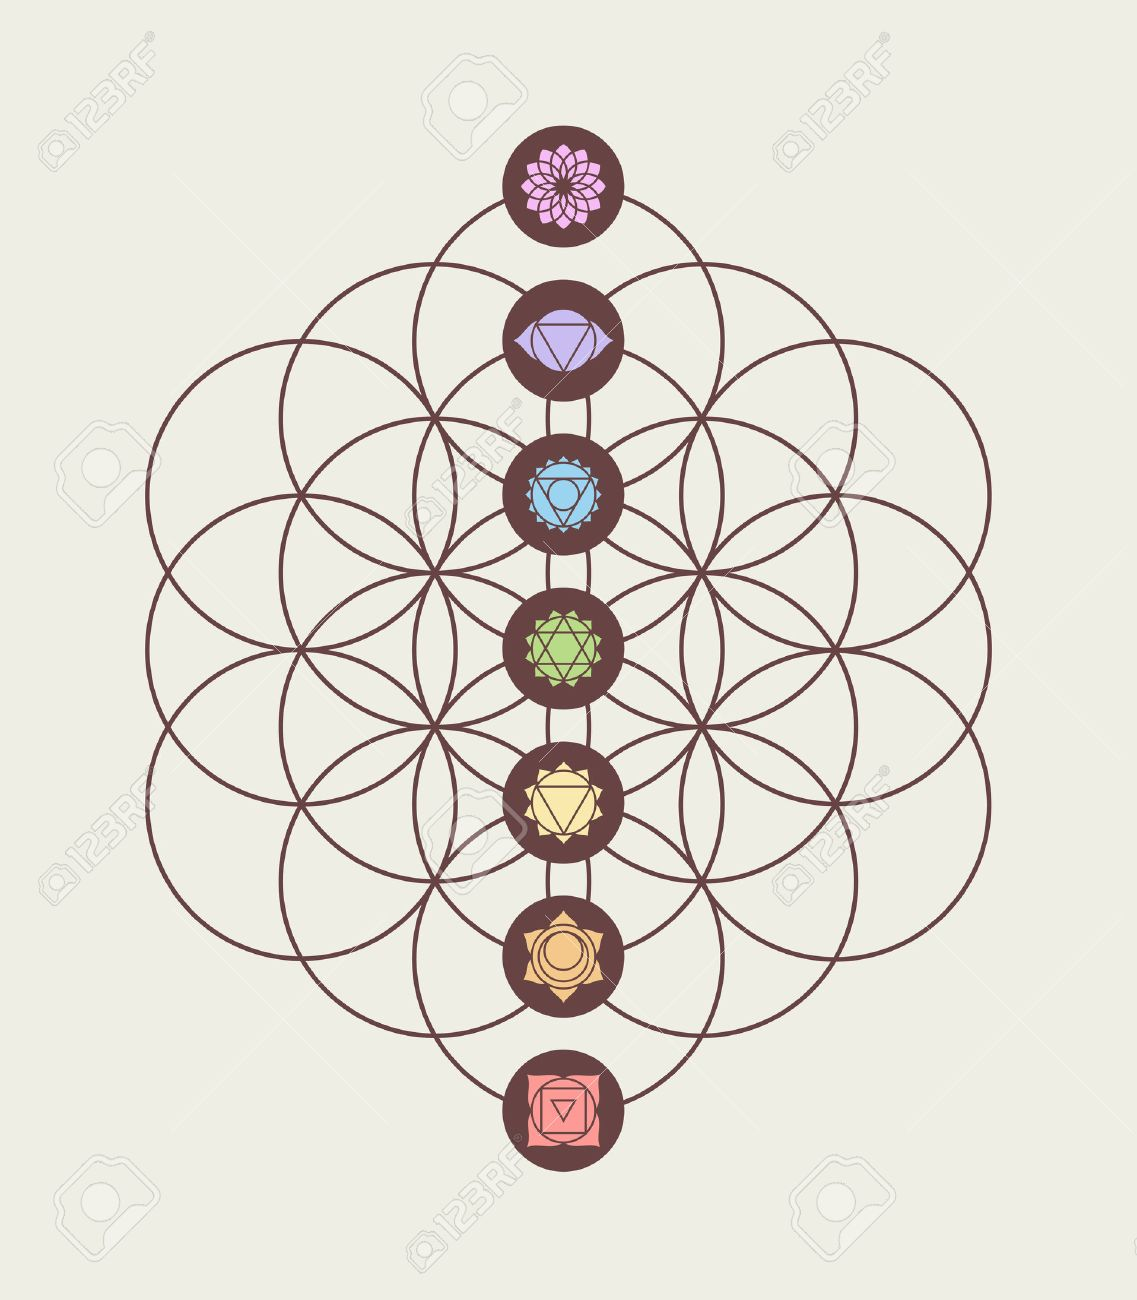 main chakras on flower of life sacred geometry background harmony